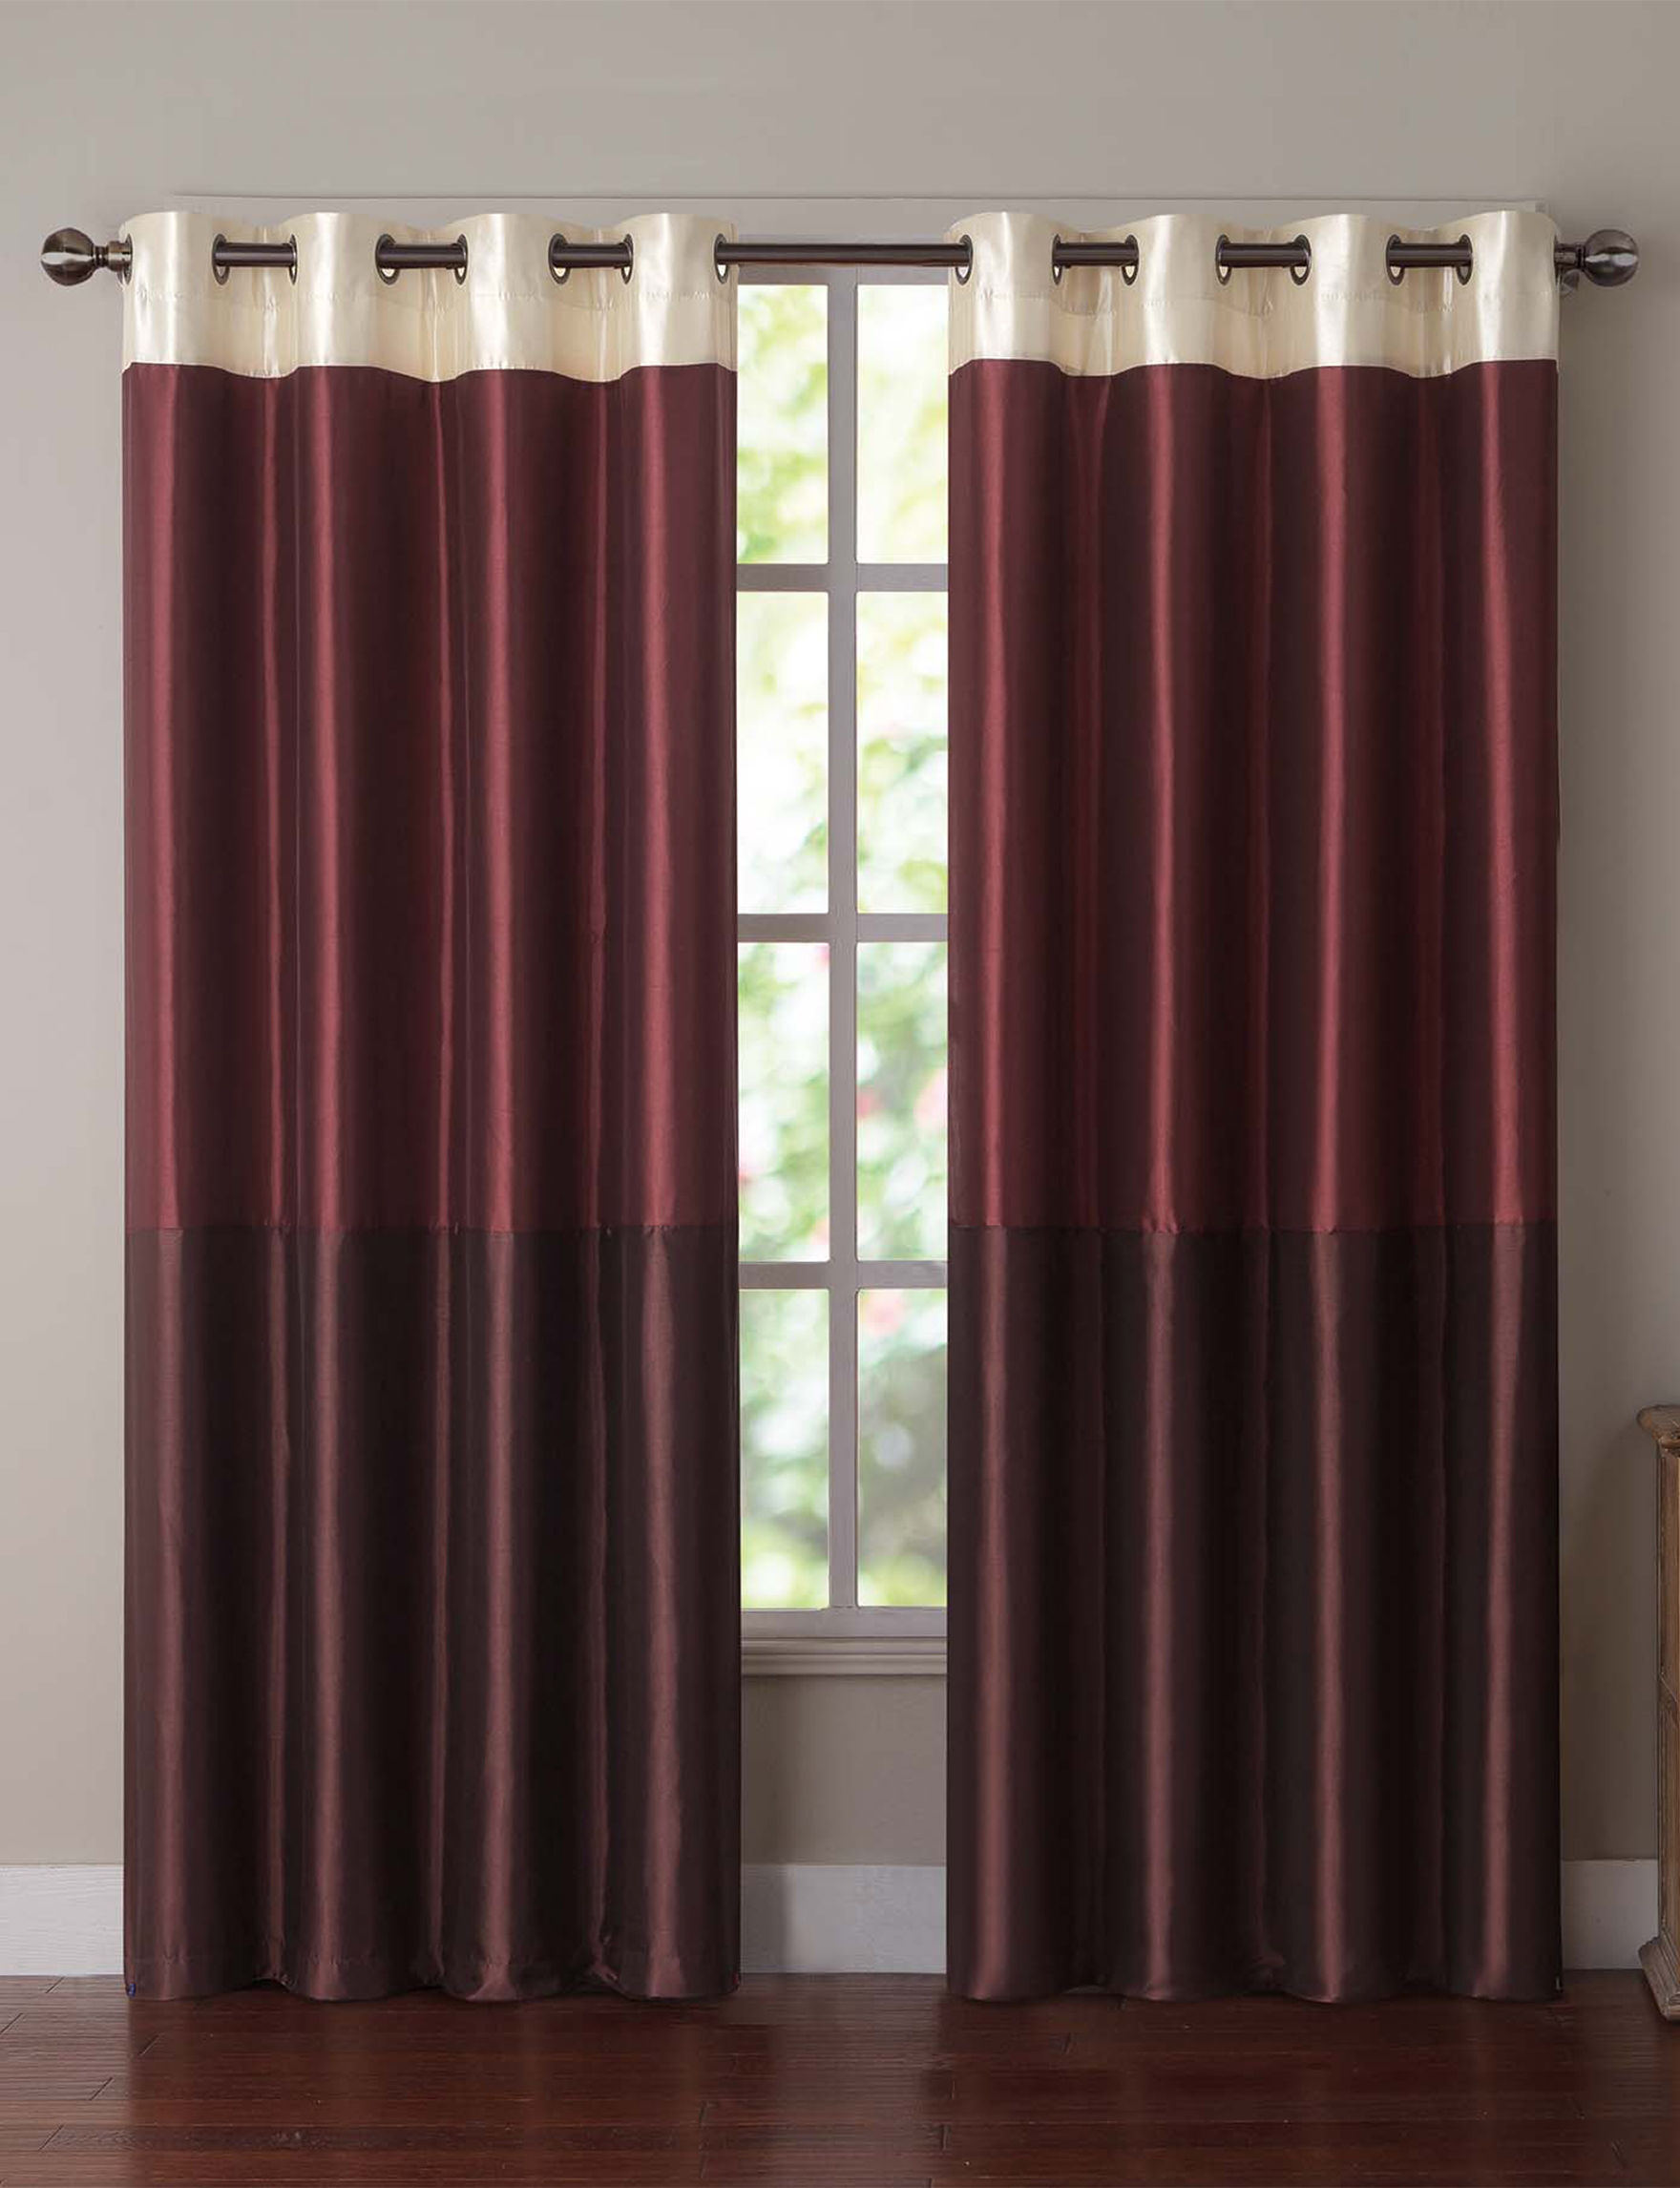 Victoria Classics Red Curtains & Drapes Window Treatments